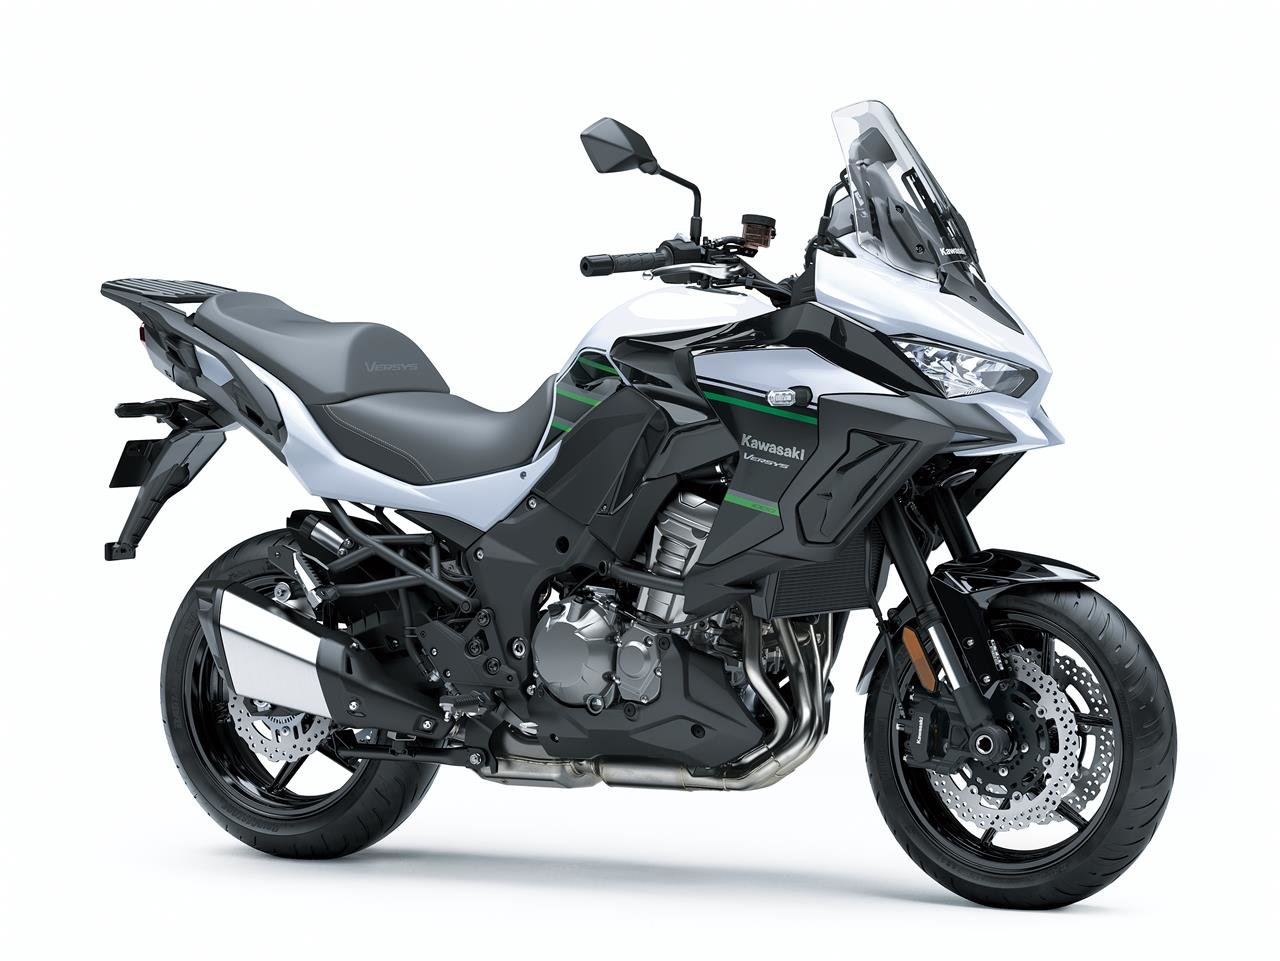 New 2020 Kawasaki Versys 1000**£700 PAID & FREE Delivery* For Sale (picture 1 of 6)